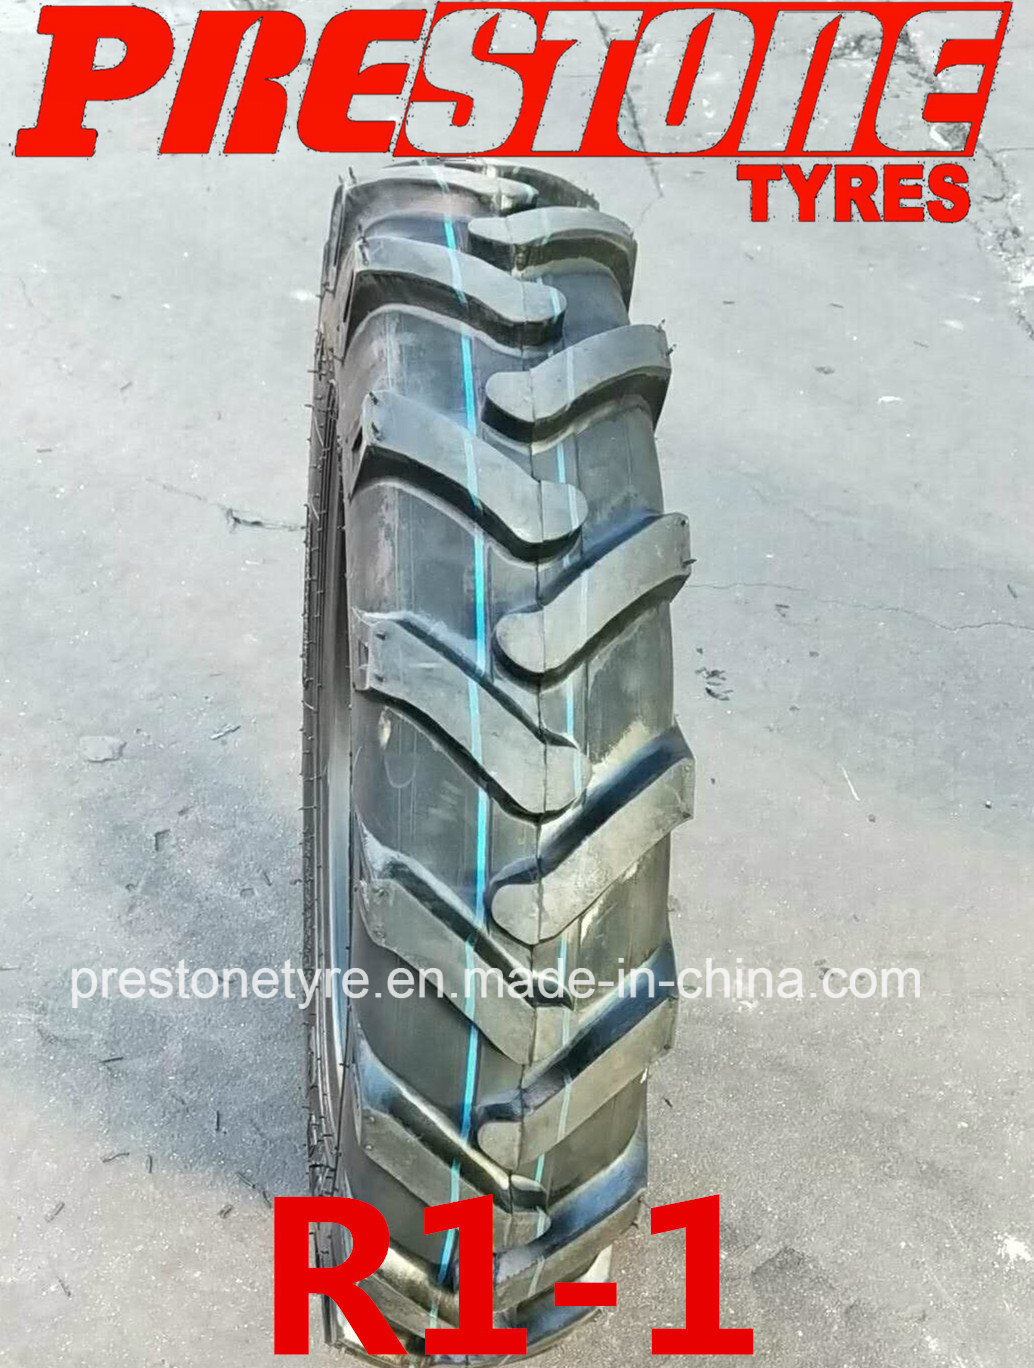 China Tyre Manufacturer R1 Pattern Bias Agricultural Tyre